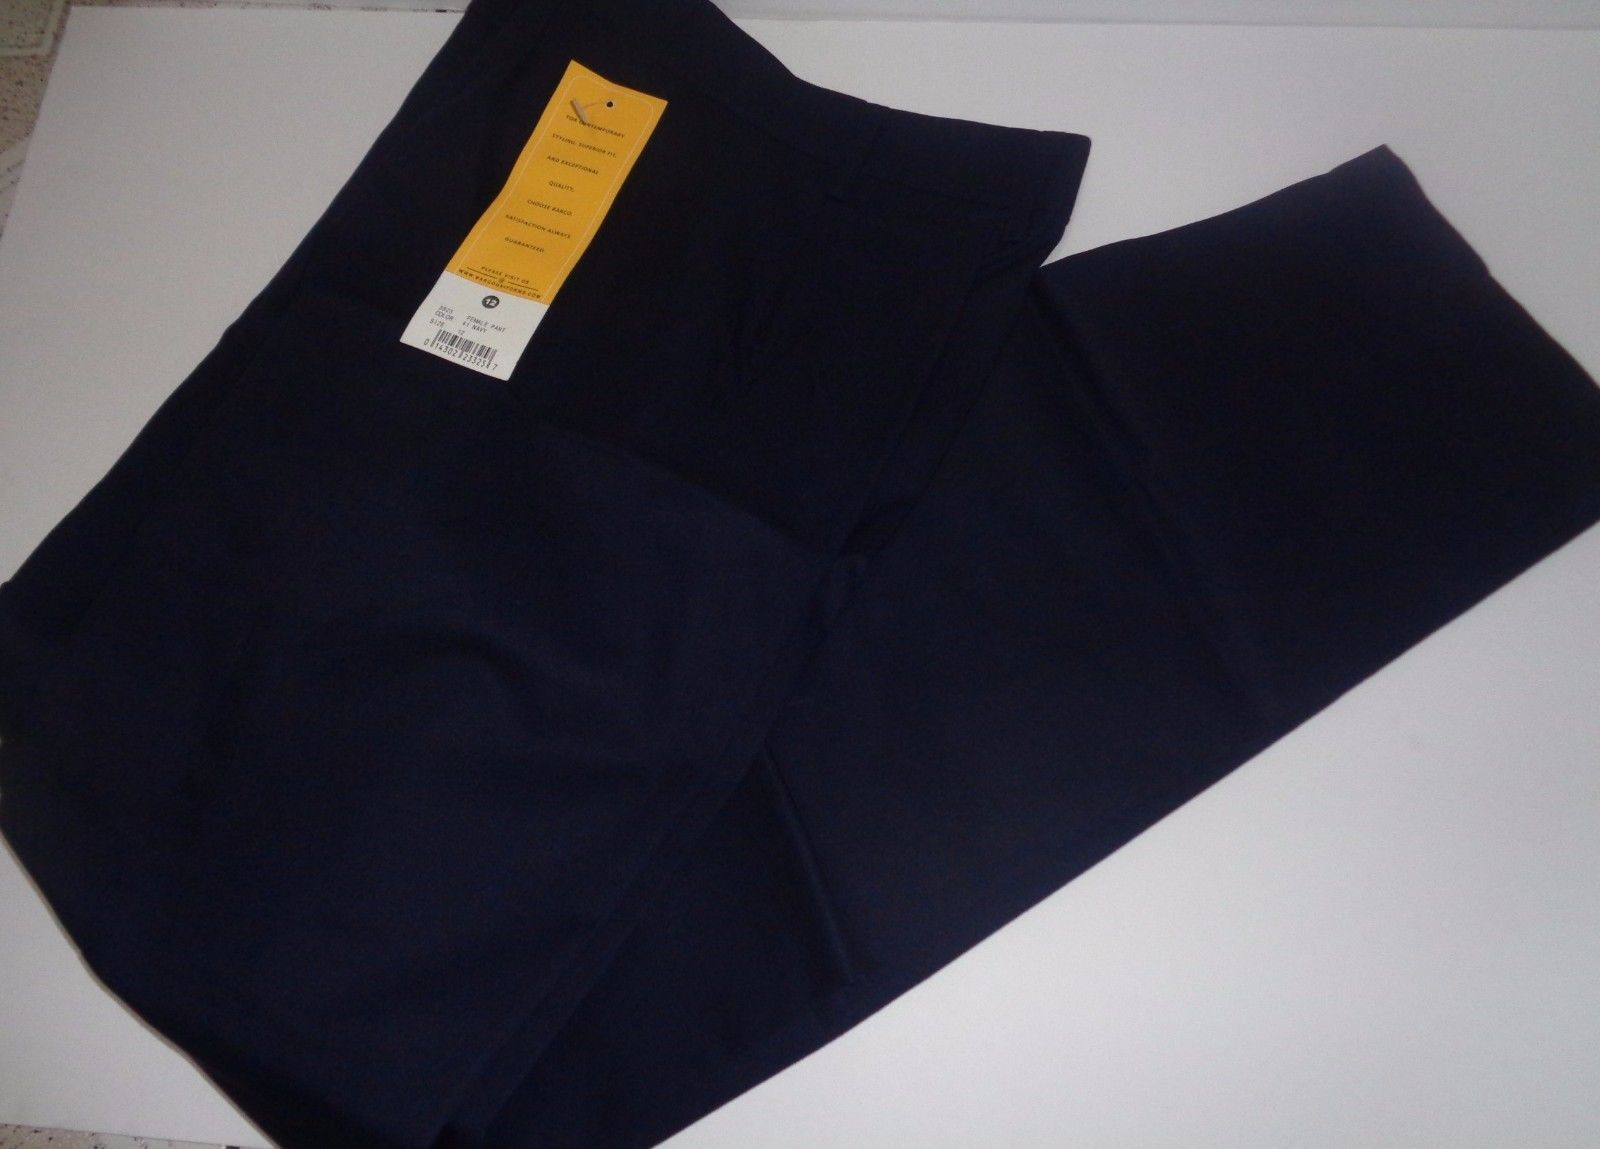 Barco Ladie's Uniform Pants Navy Blue SZ 12 NWT Pleated Front